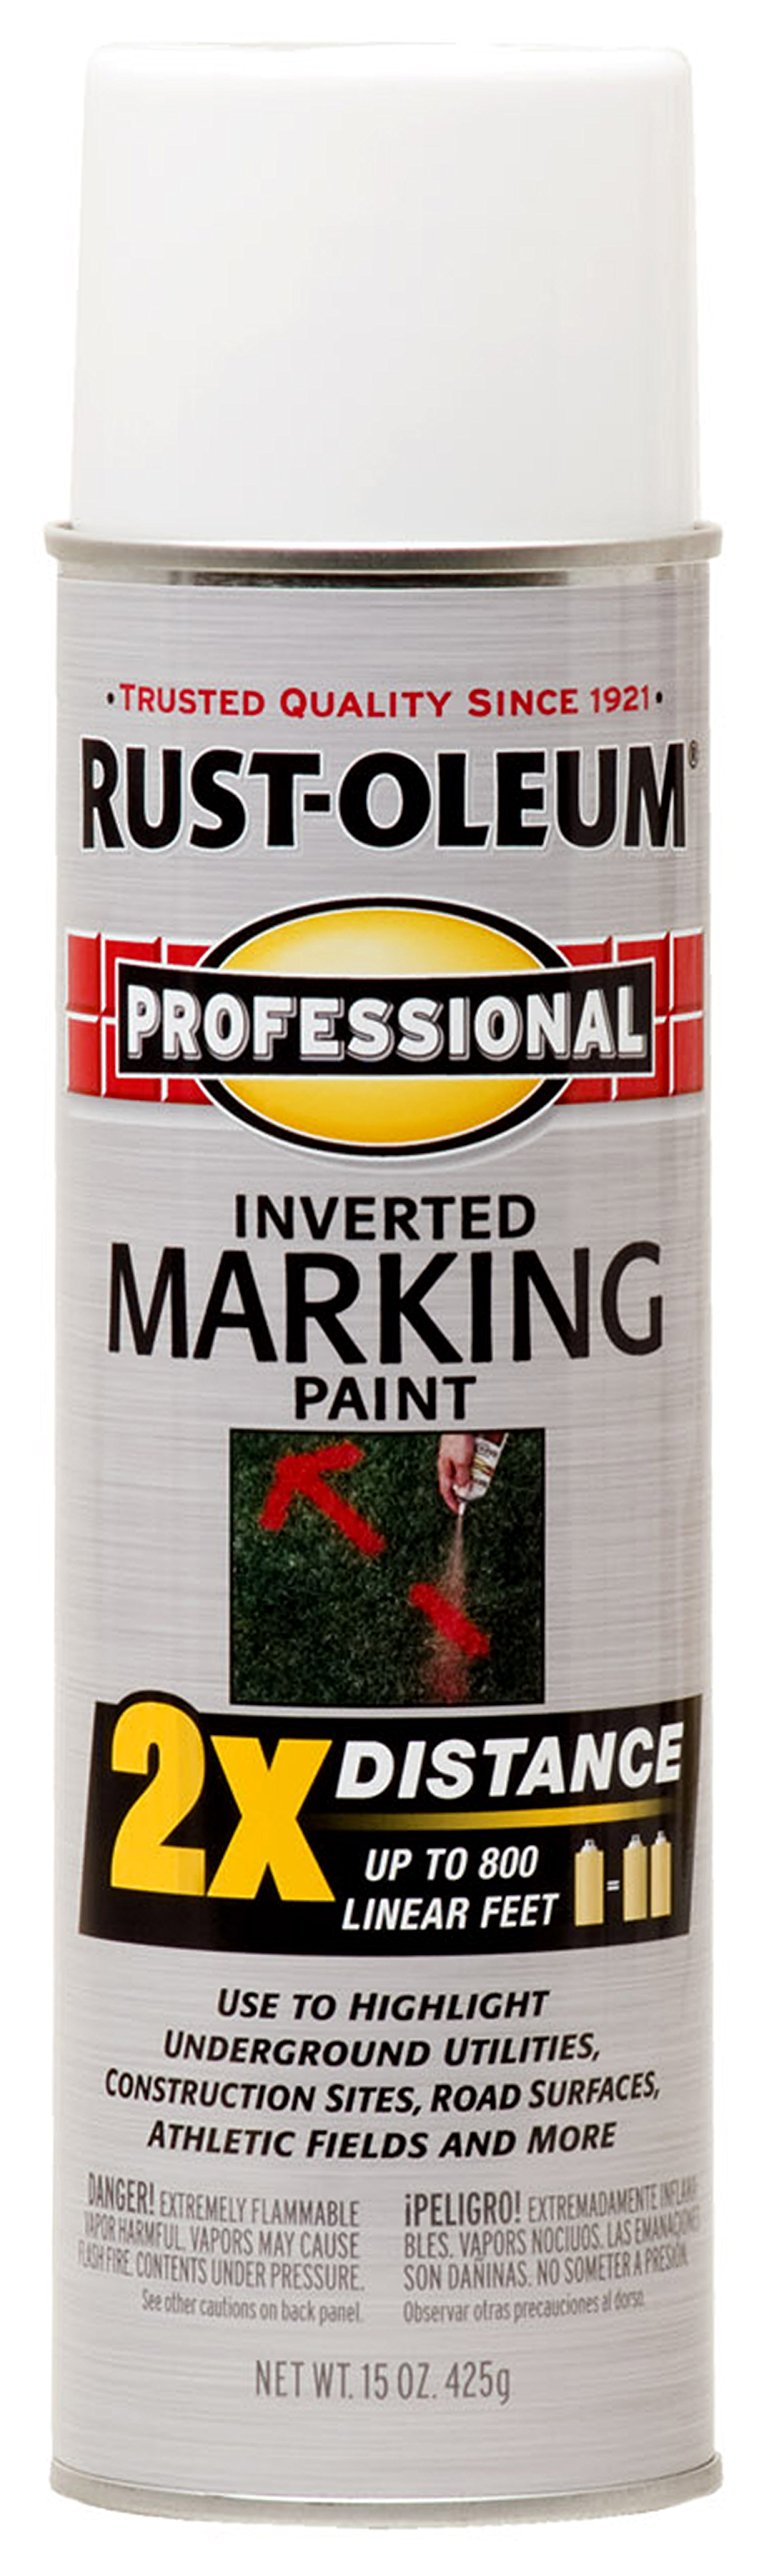 Rust-Oleum 266593-6 PK 266593 Professional 2X Distance Marking Spray Paint, 15-Ounce, White, 6 PK by Rust-Oleum (Image #1)